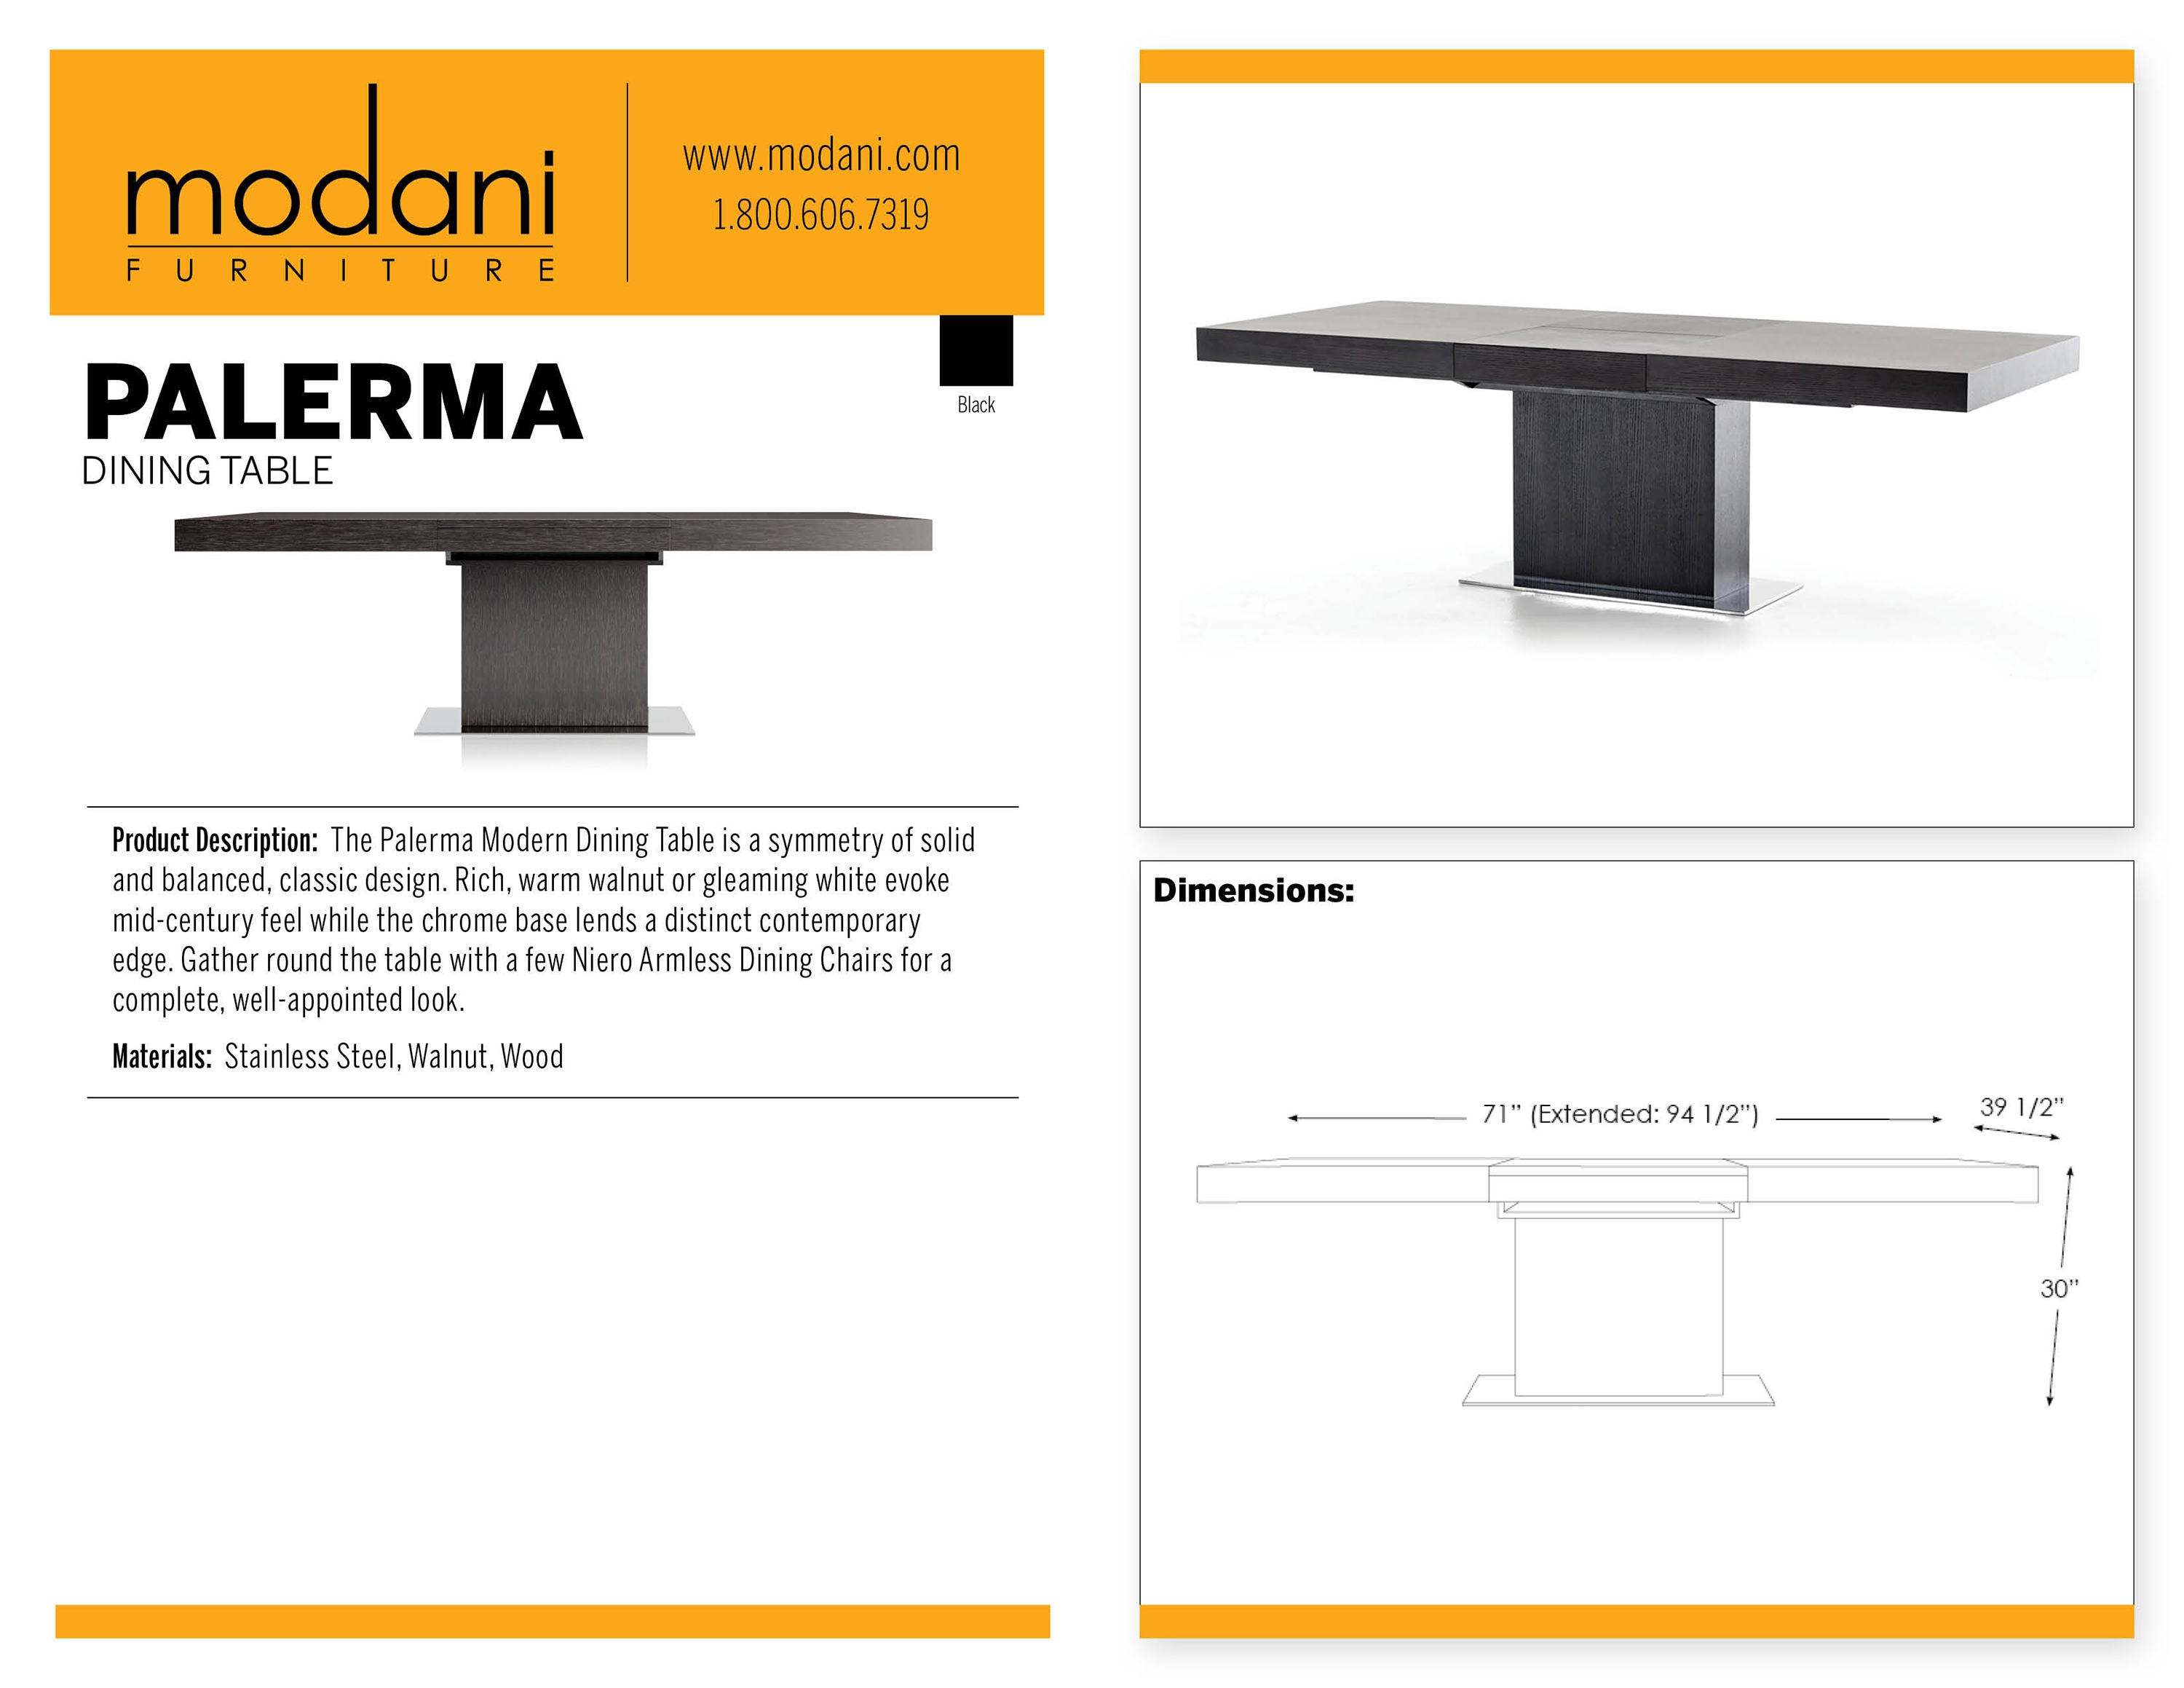 Shop The Beautiful Palerma Modern Dining Table in Black Oak : palermadiningtableblacktag2017 from www.modani.com size 3000 x 2318 jpeg 885kB